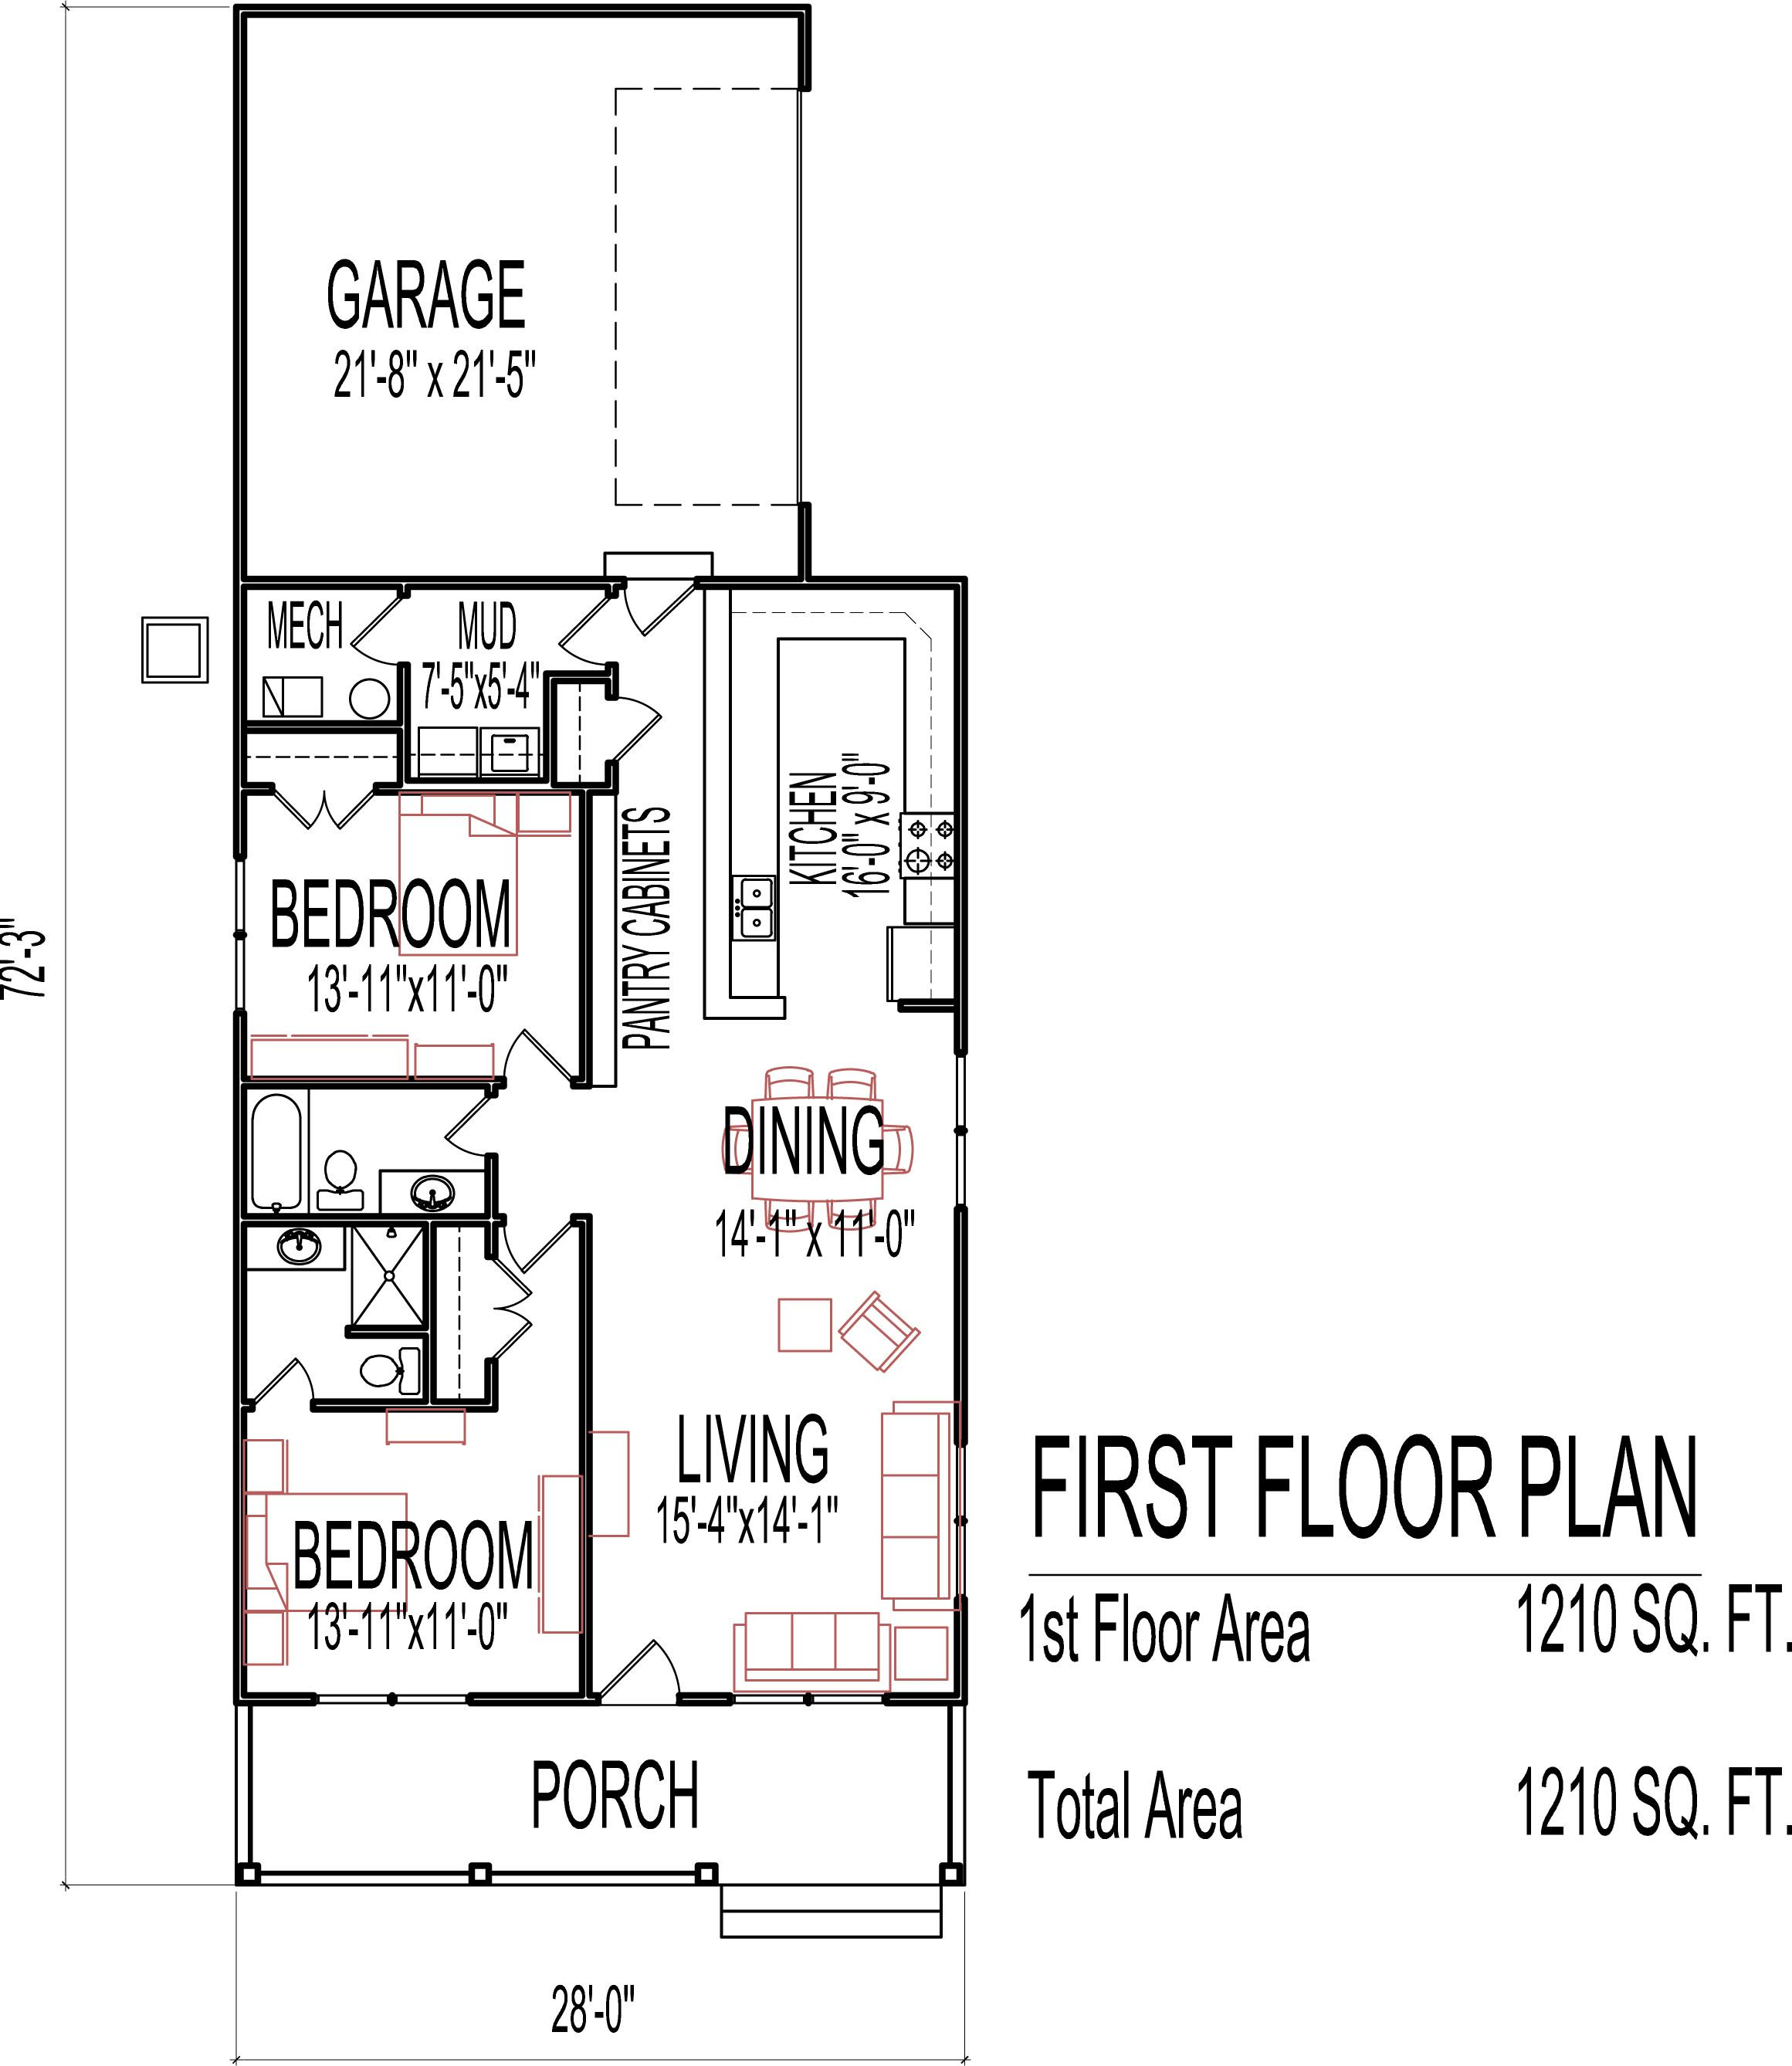 Small 3 Bedroom Cabin Plans Small Low Cost Economical 2 Bedroom 2 Bath 1200 Sq Ft Single Story